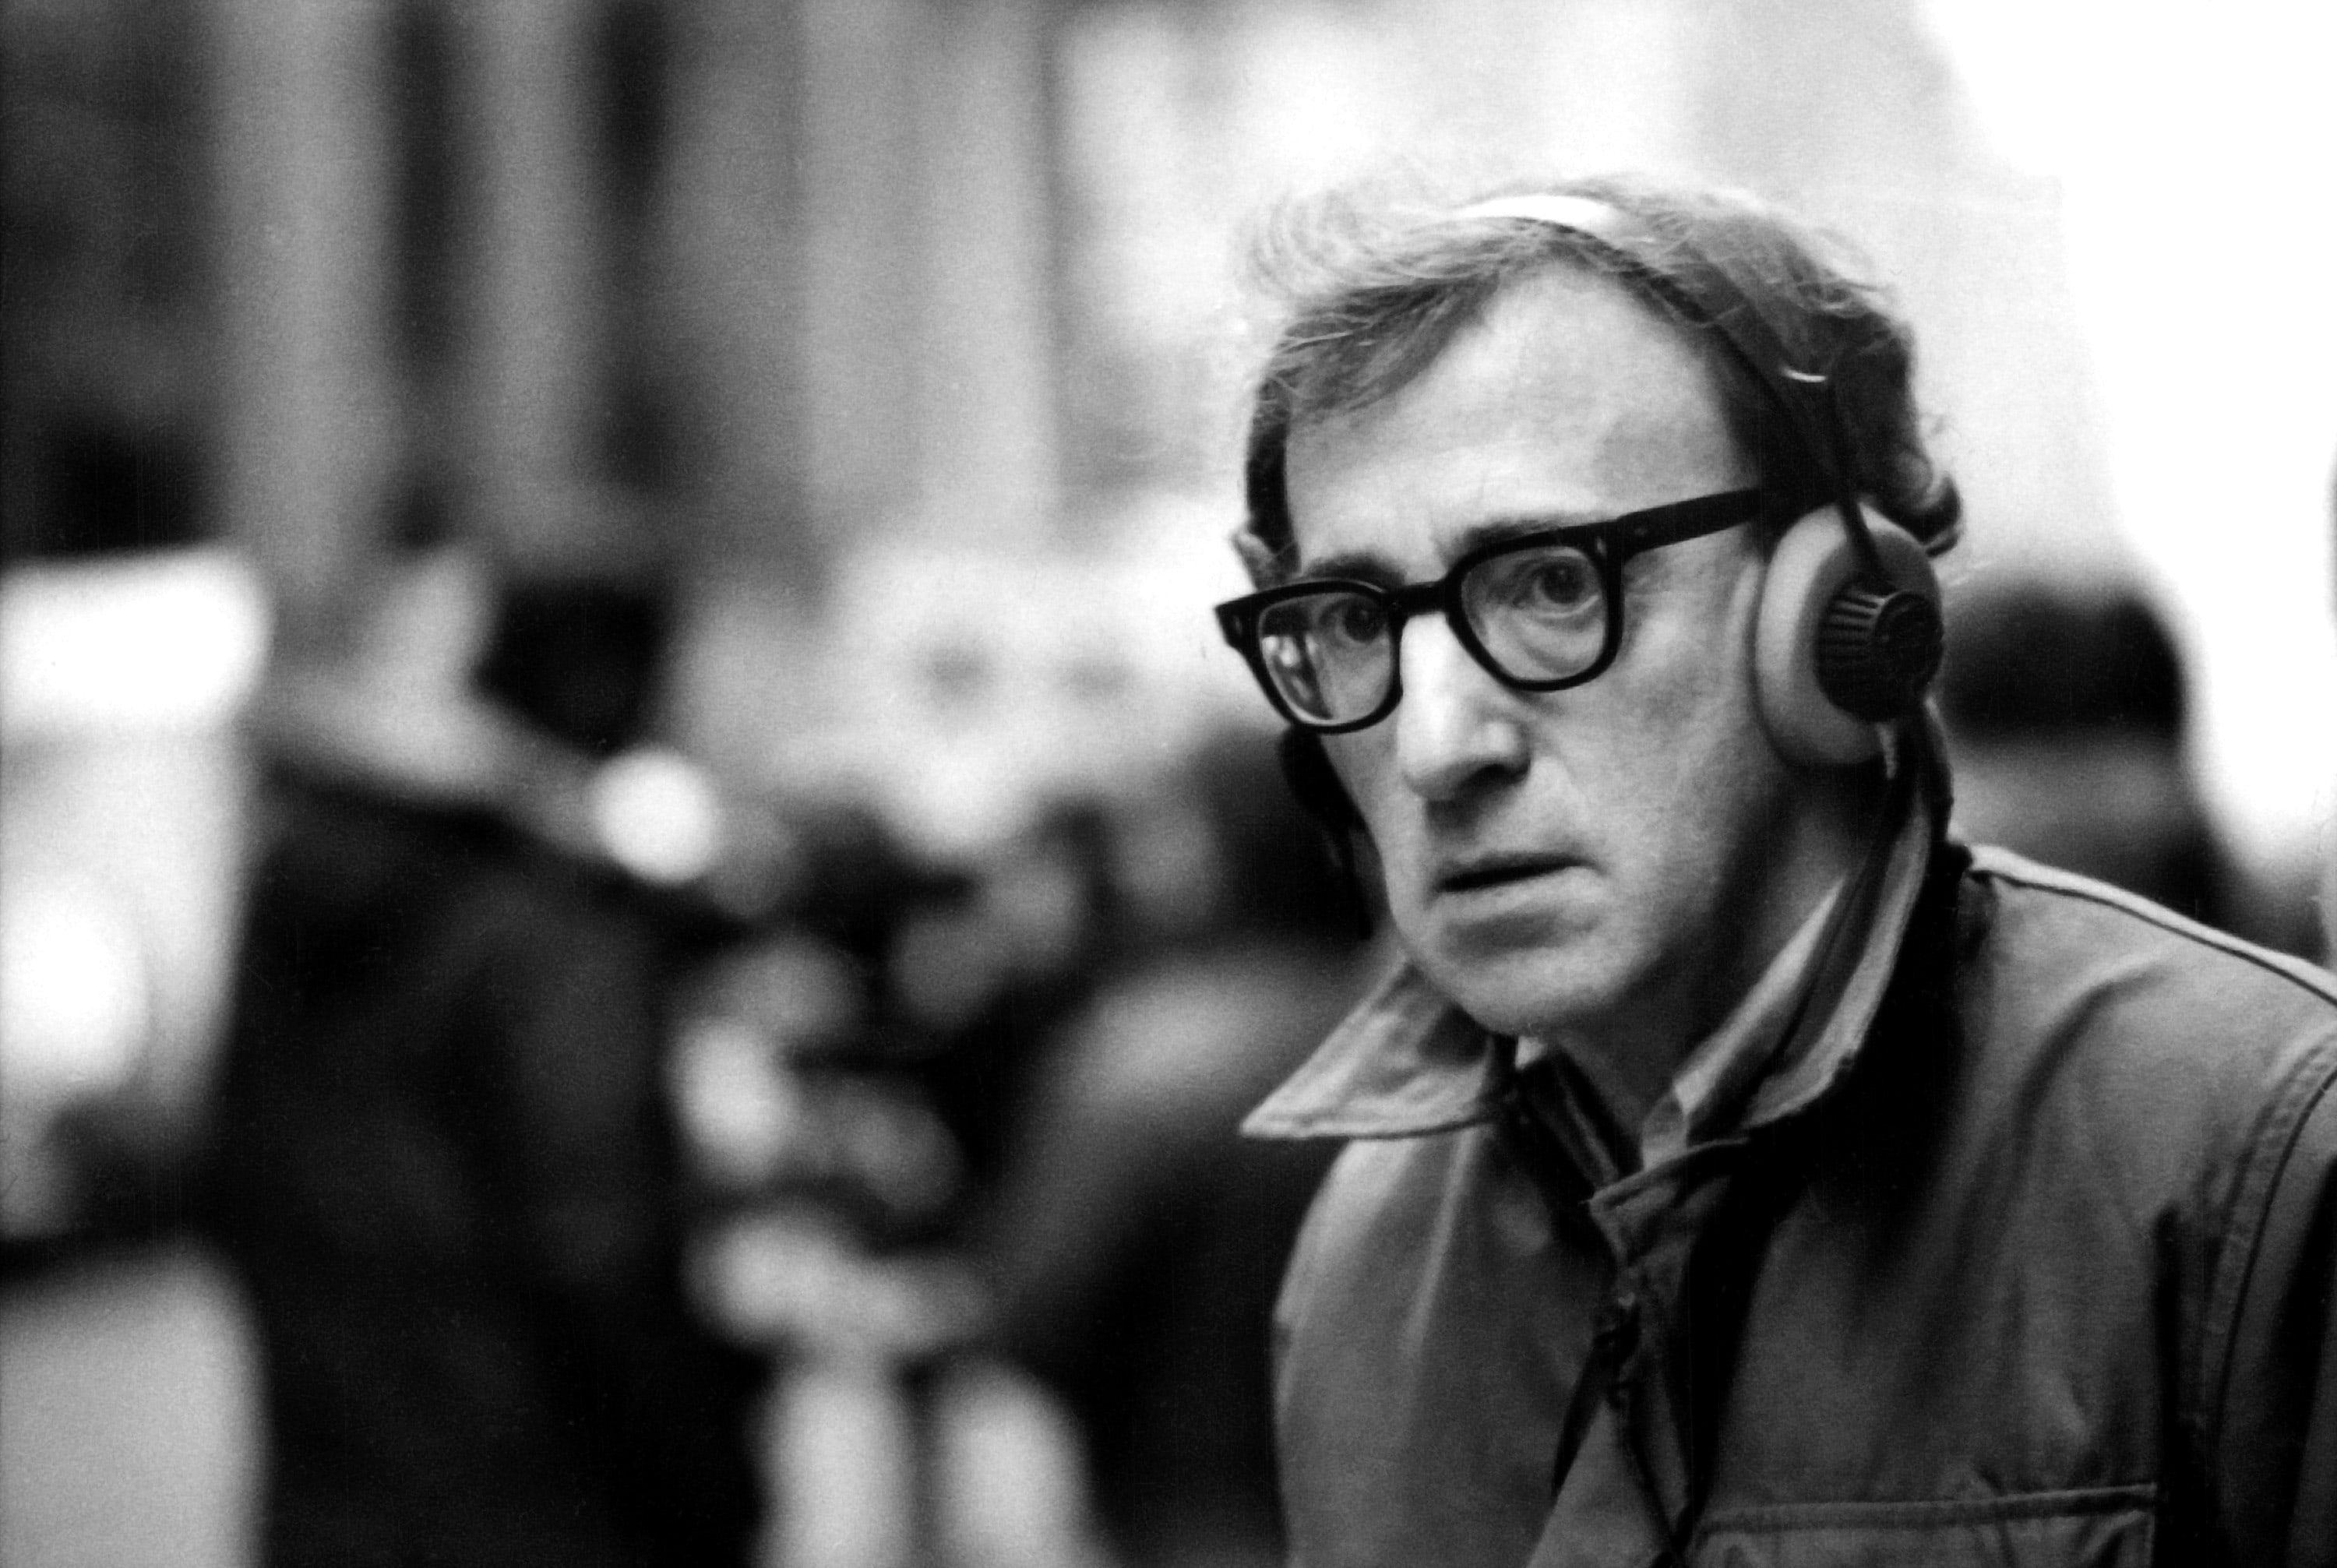 Woody Allen HD Desktop Wallpapers | 7wallpapers.net